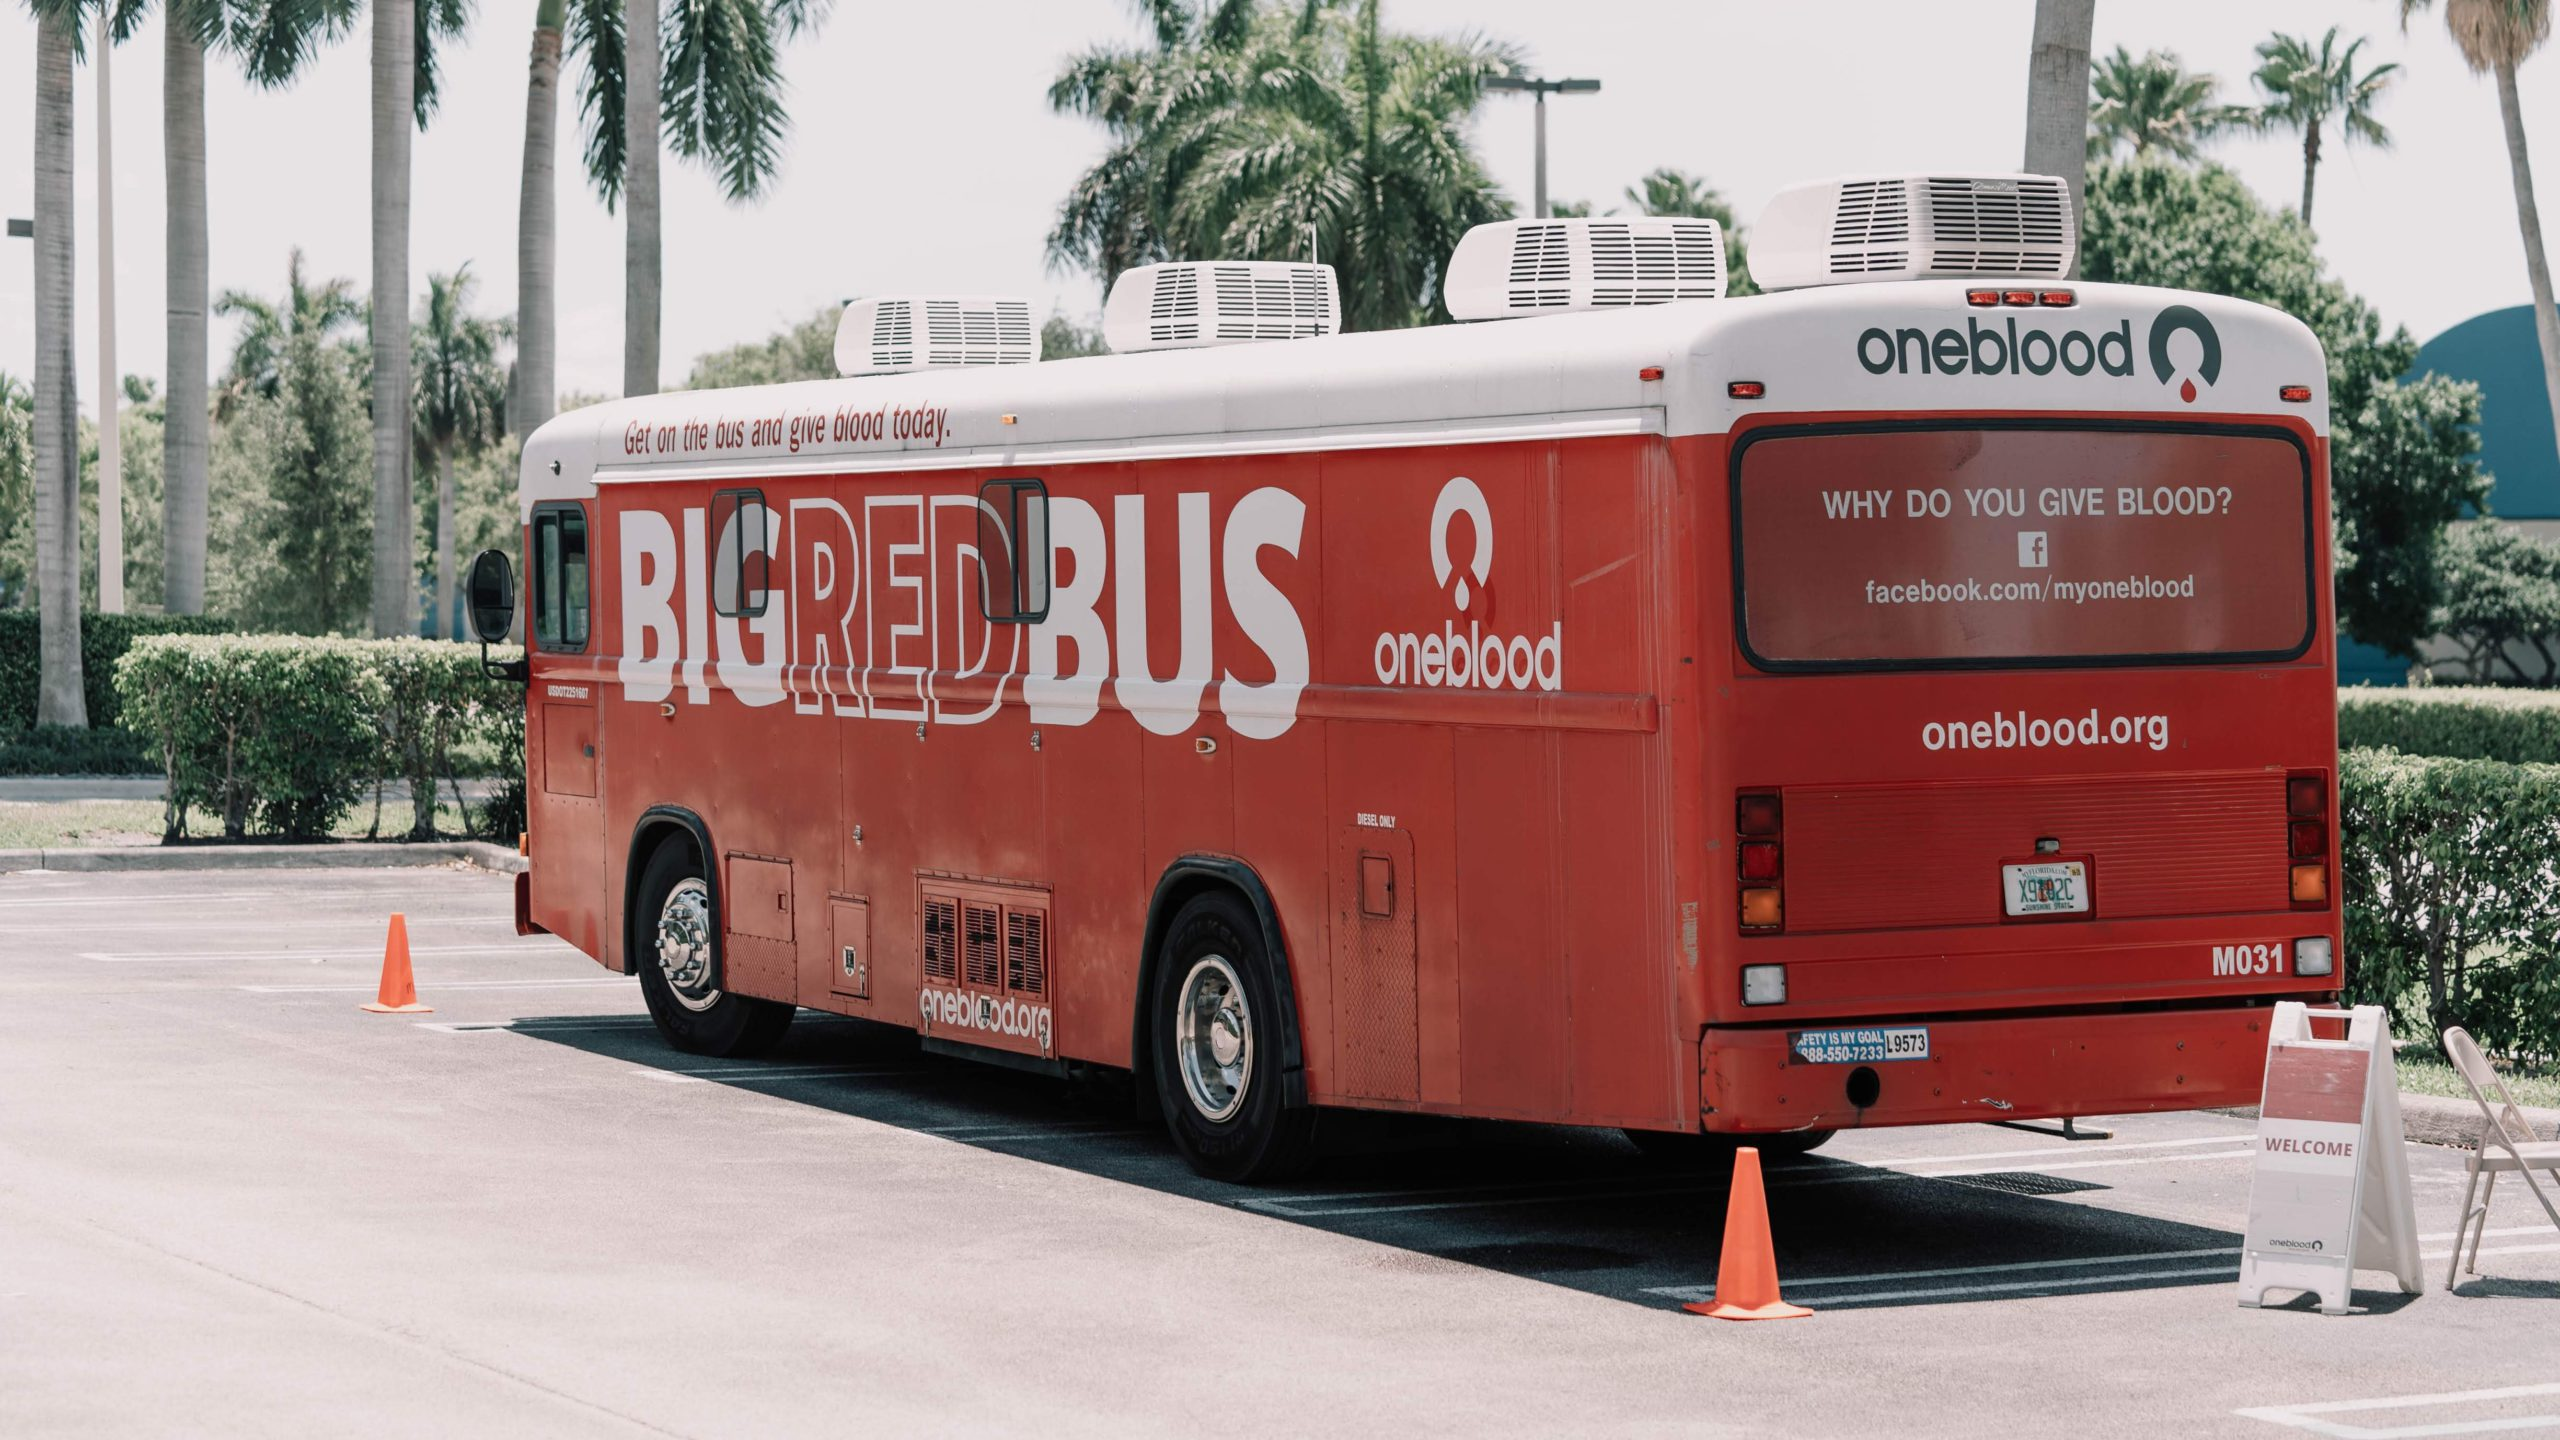 Save a Life During National Blood Donor Month